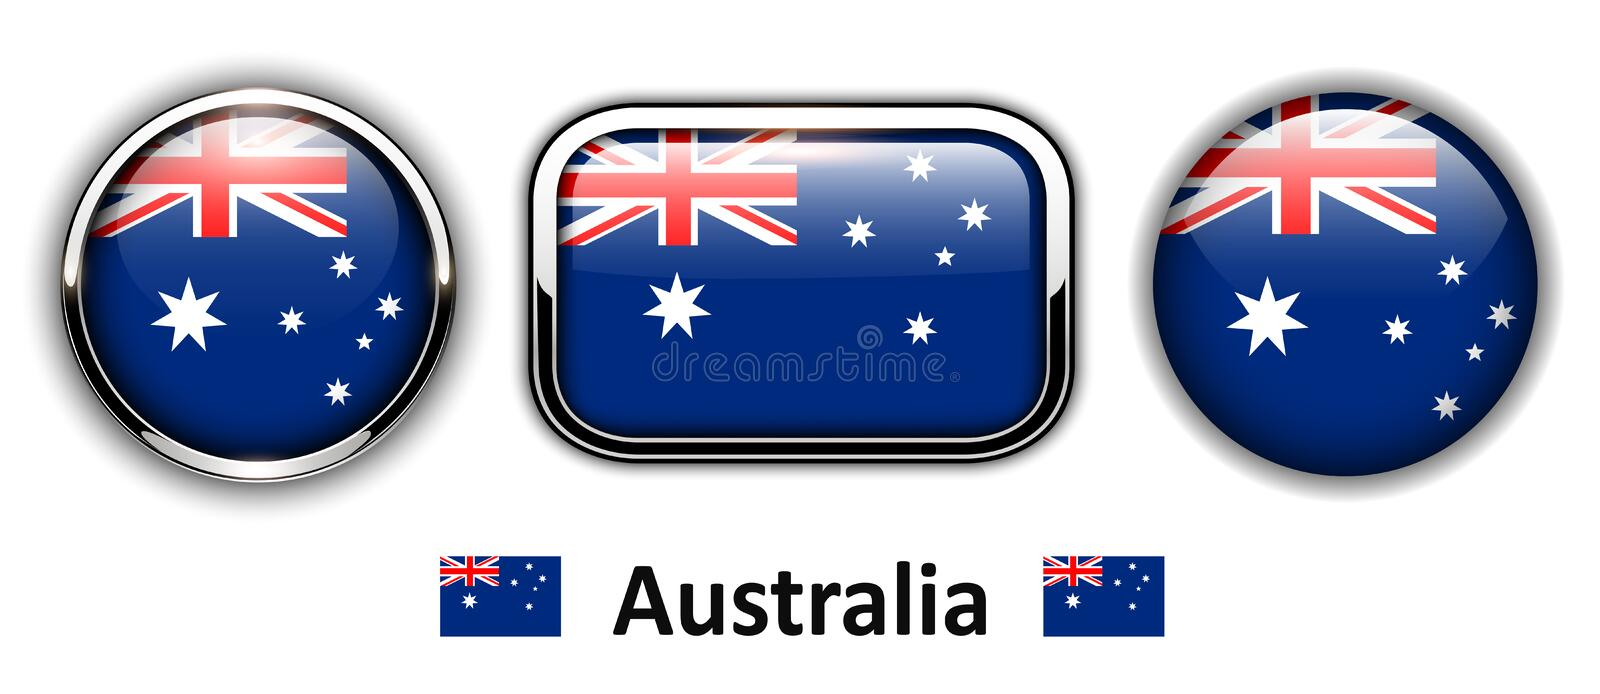 Australia flag buttons royalty free illustration